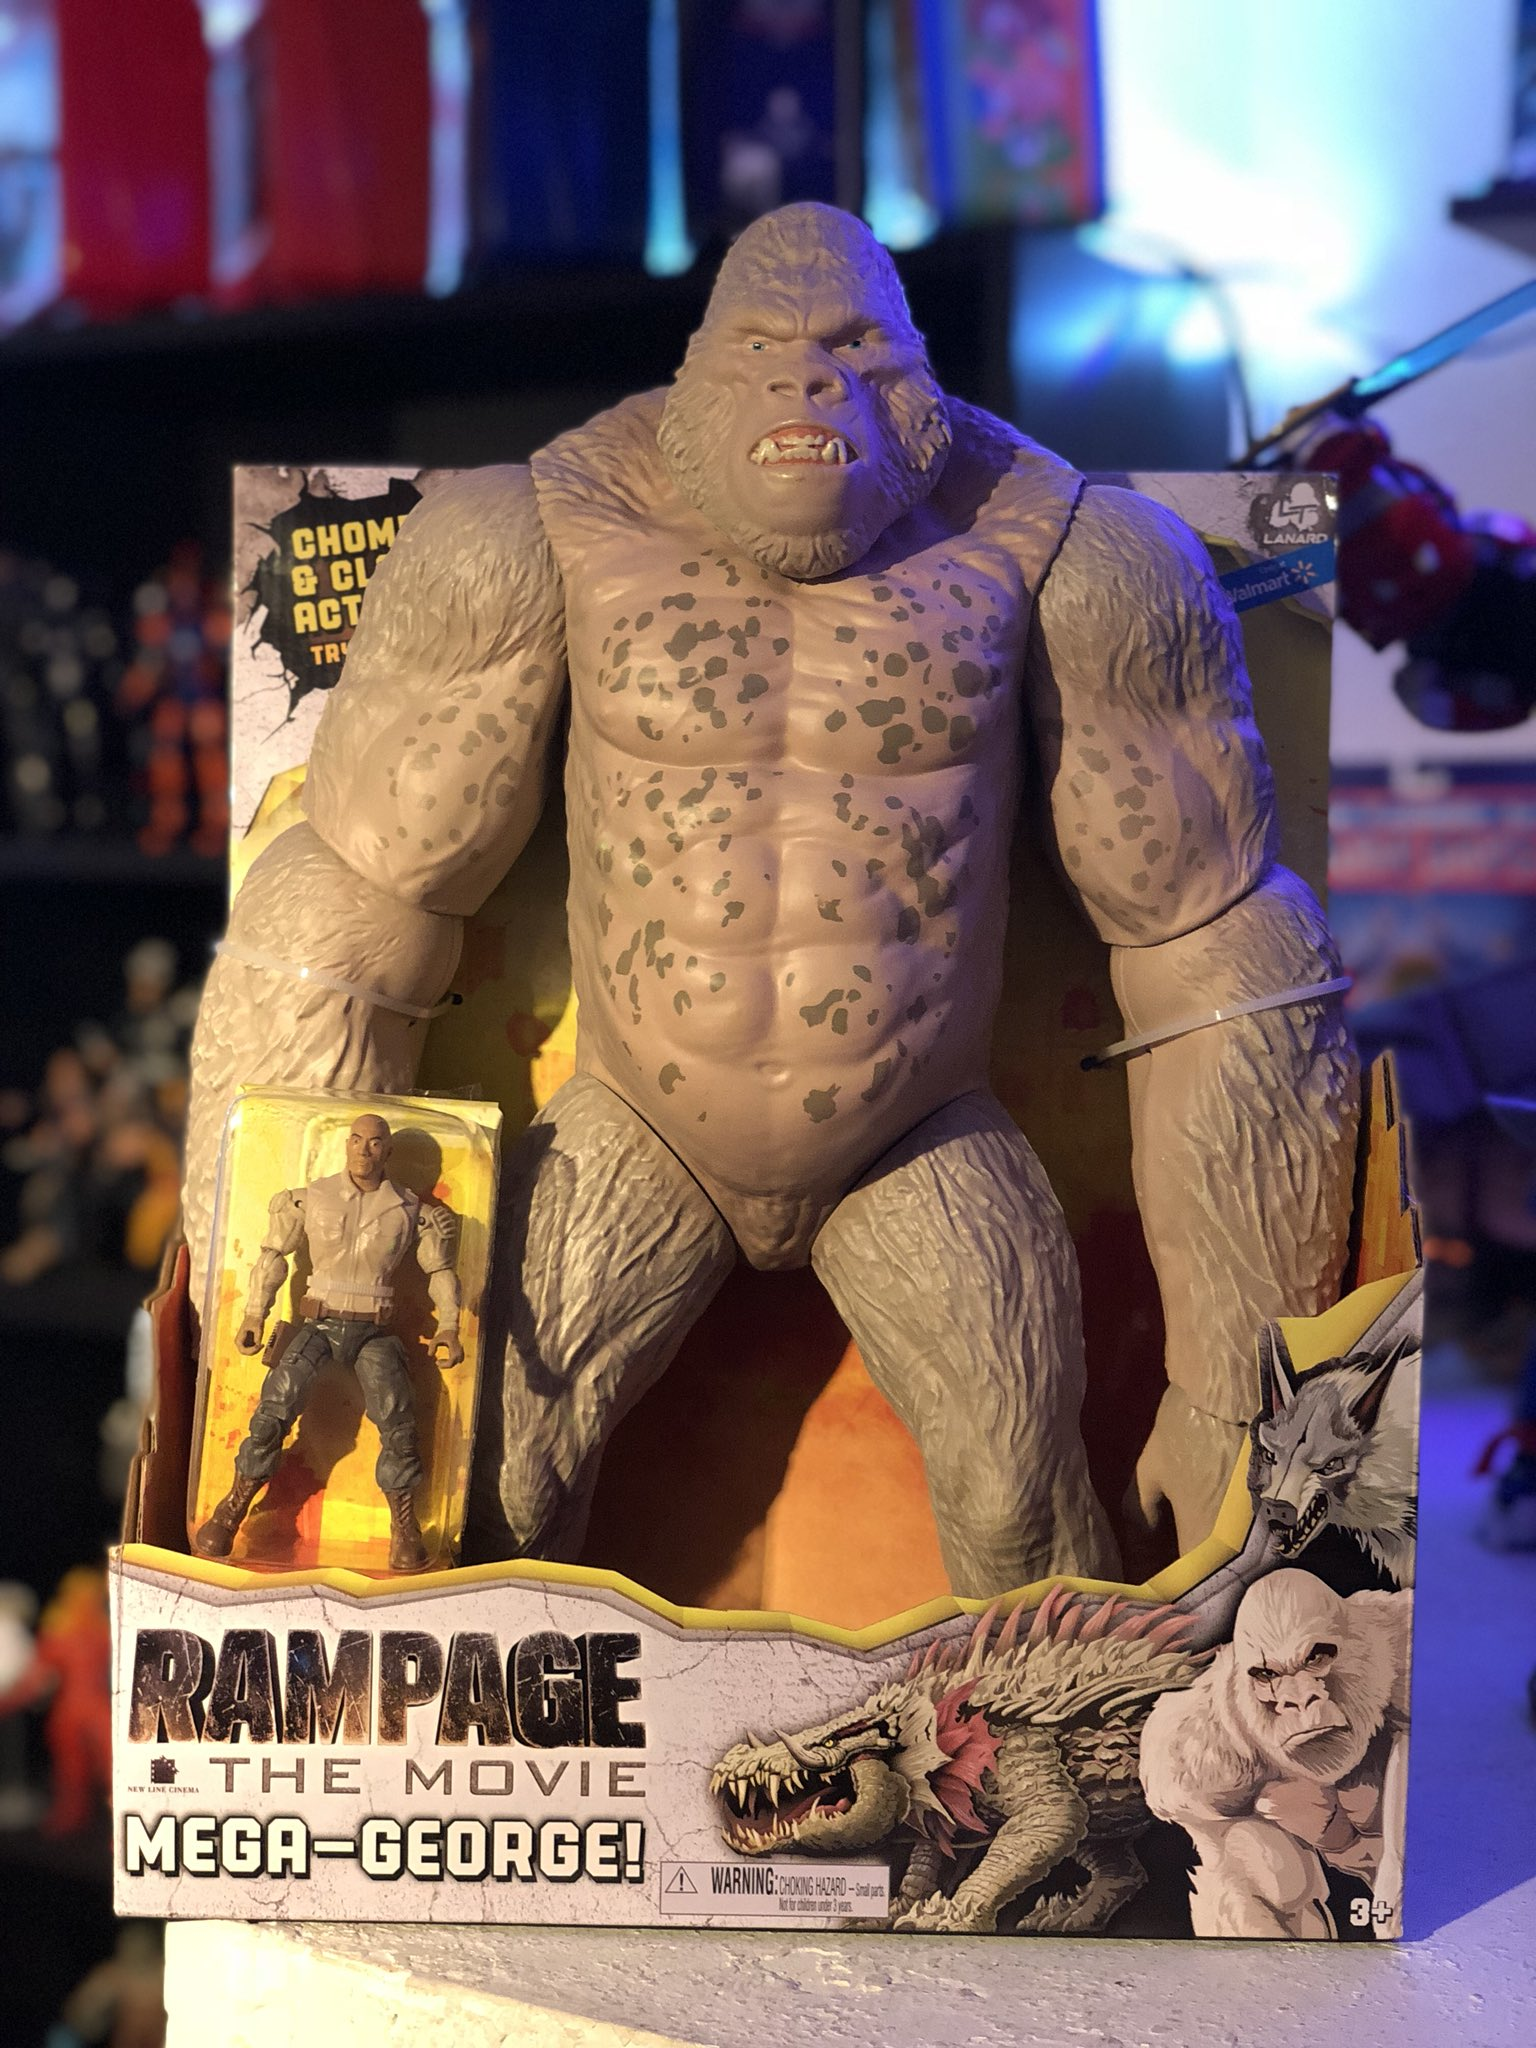 Outtatheboxnw On Twitter Added This Crazy Guy To The Collection This Evening George From The New Rampage Film Coming Out Soon A Huge Toy Comparable To The Kingkong I Already Own Love